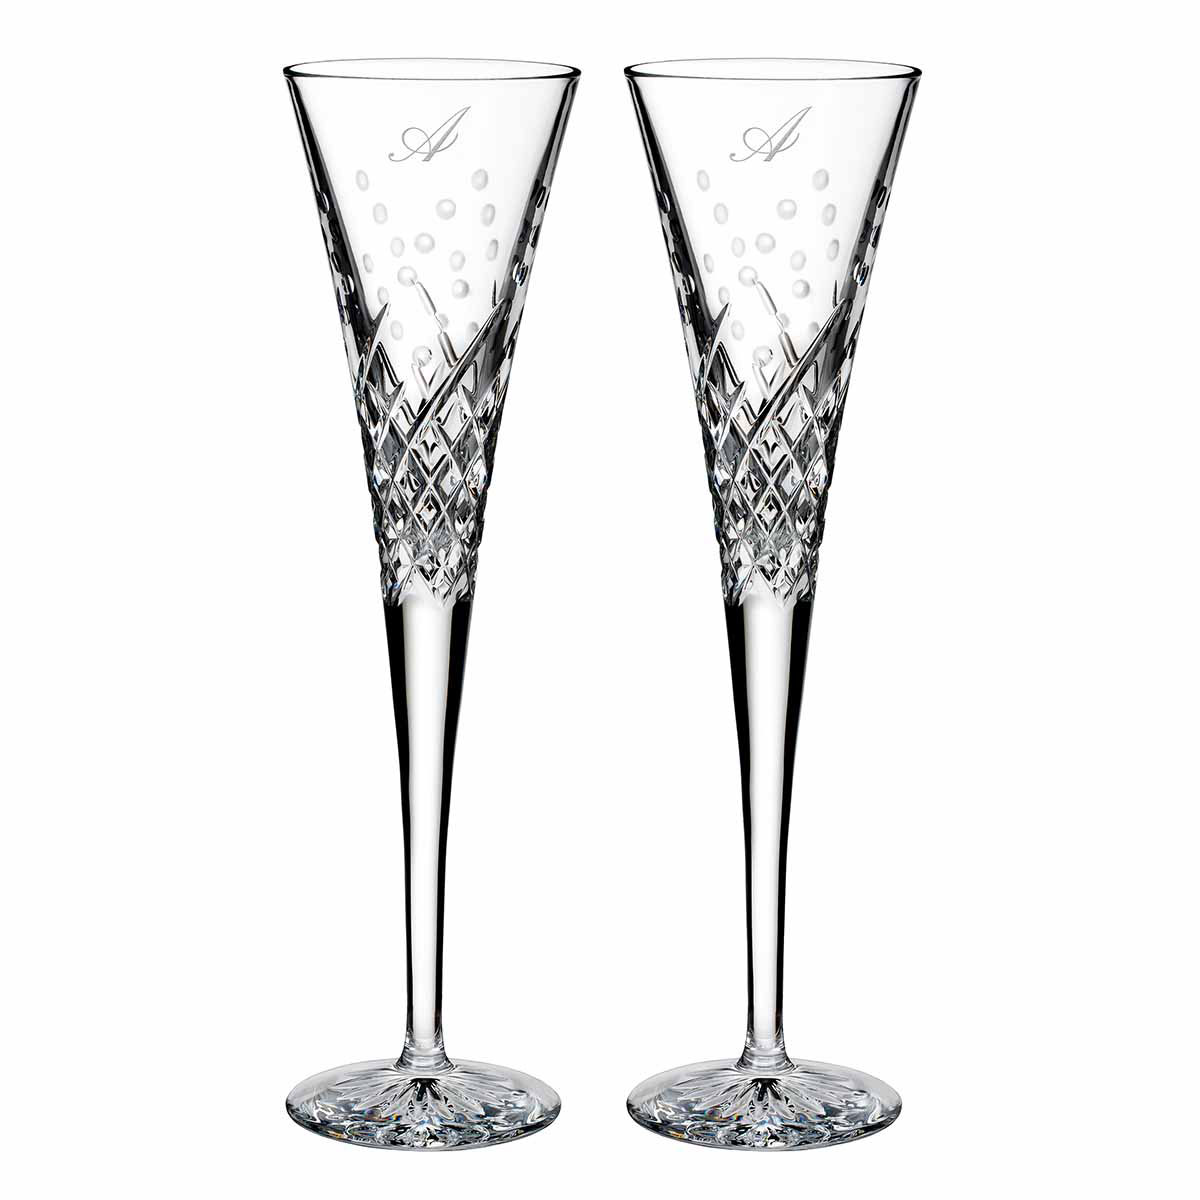 Waterford Crystal, Wishes Happy Celebrations Crystal Flutes, Pair, Monogram Script A